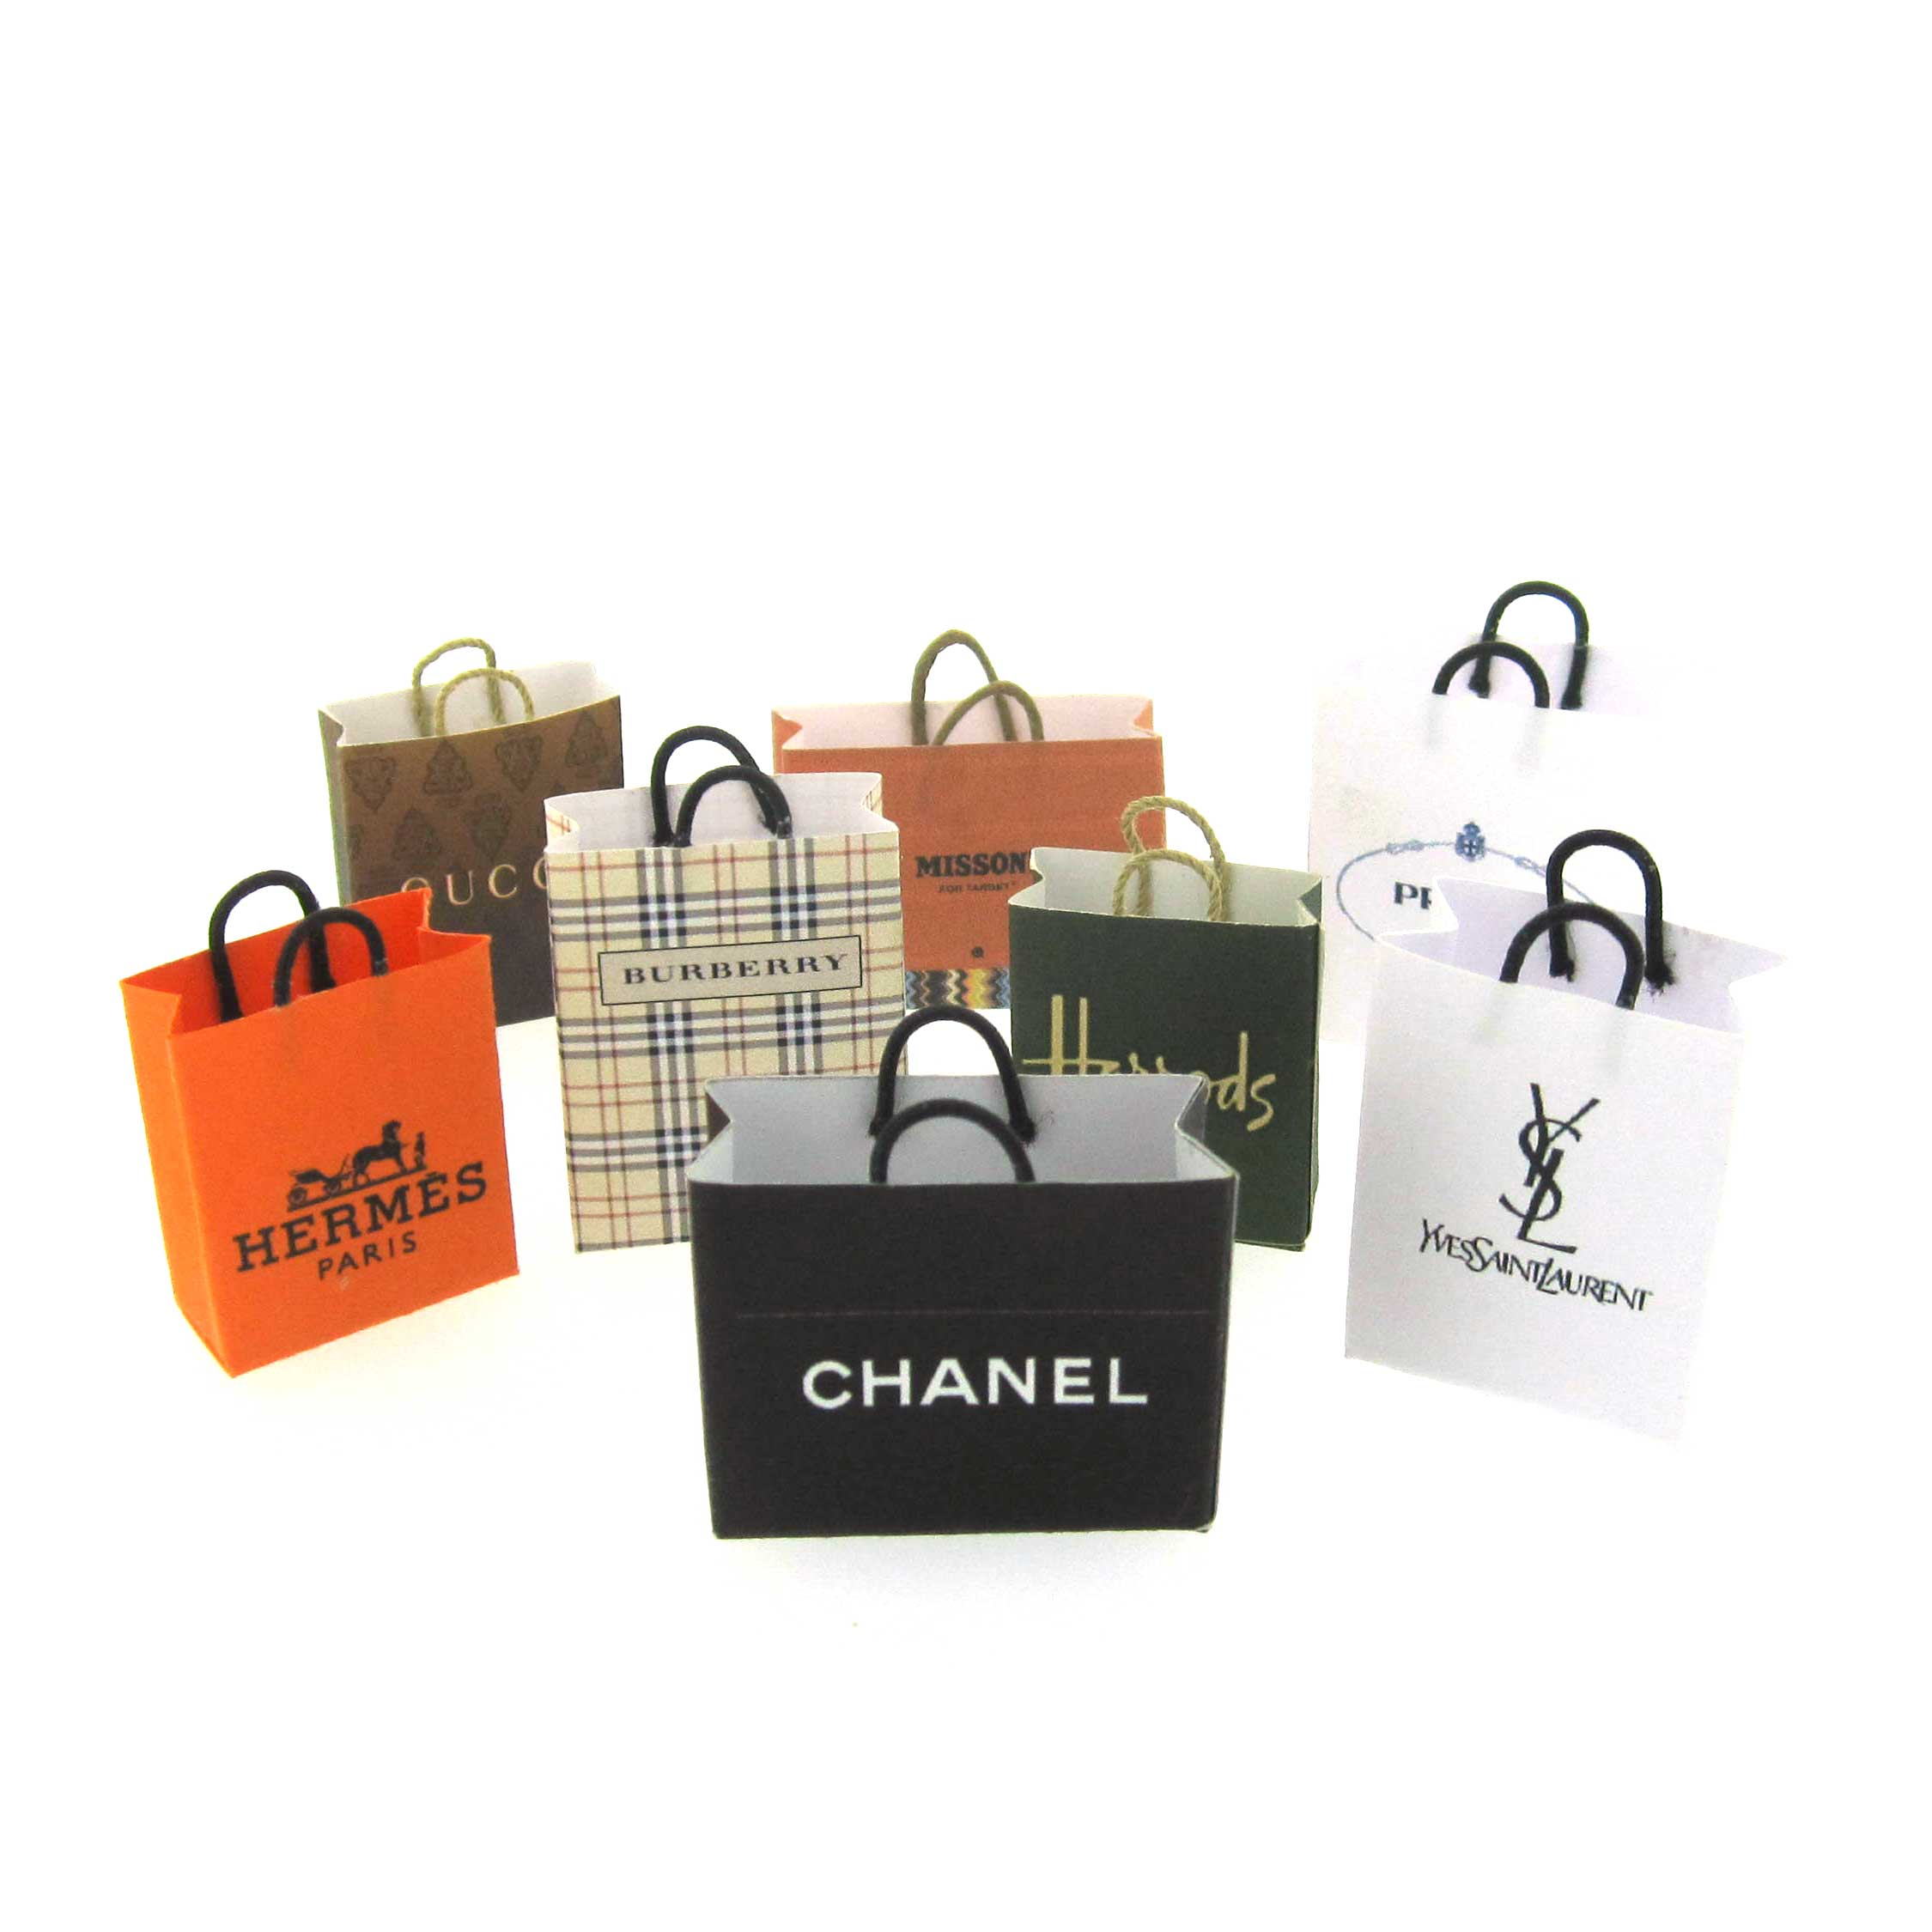 branded shopping bags images - photo #9